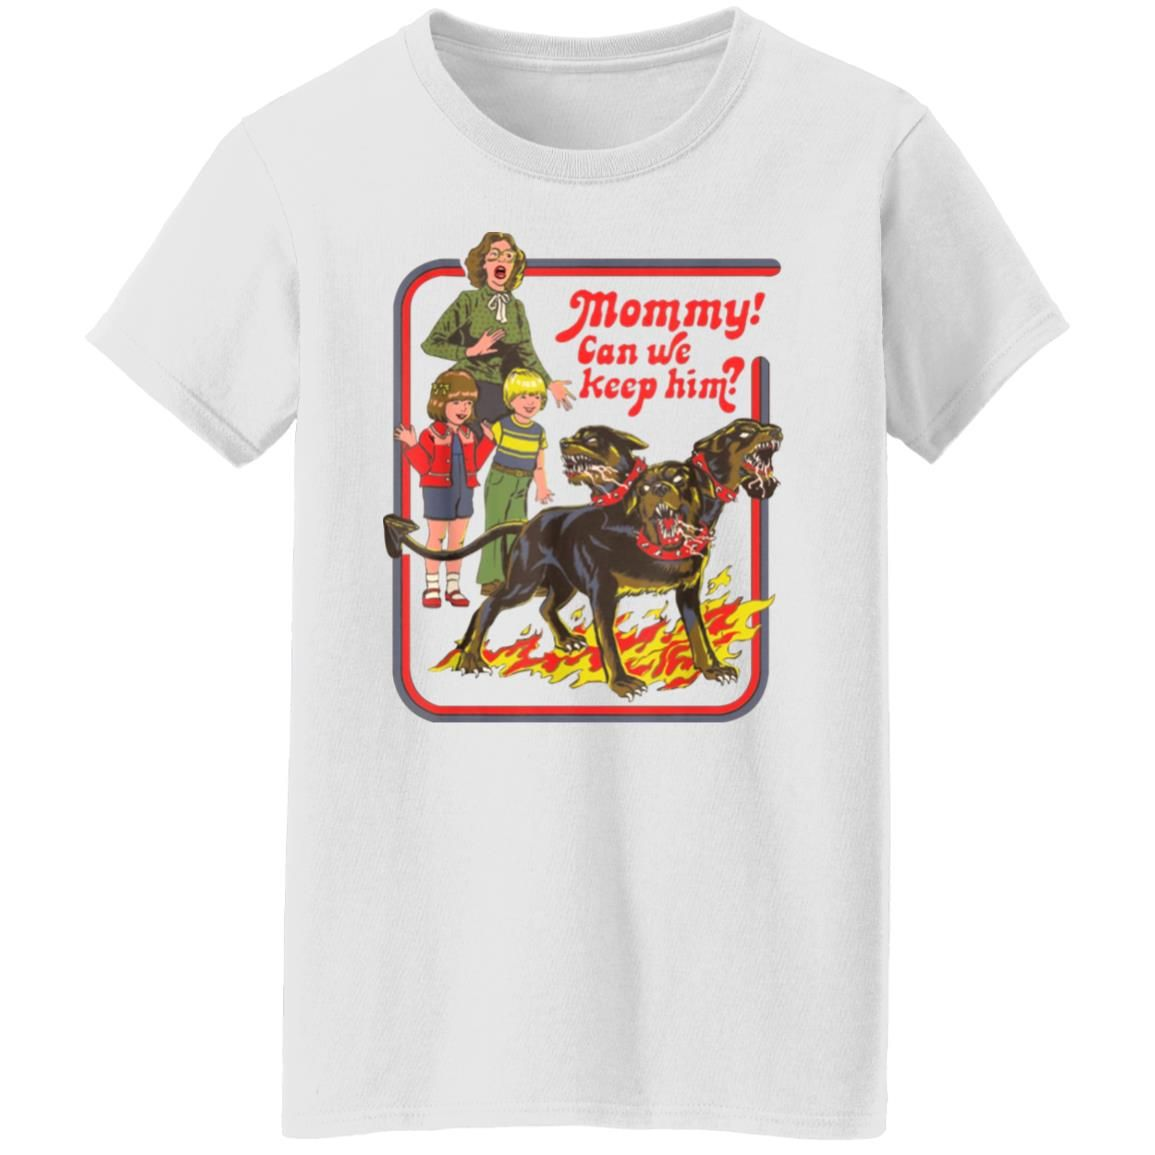 Mommy! Can We Keep Him Shirt